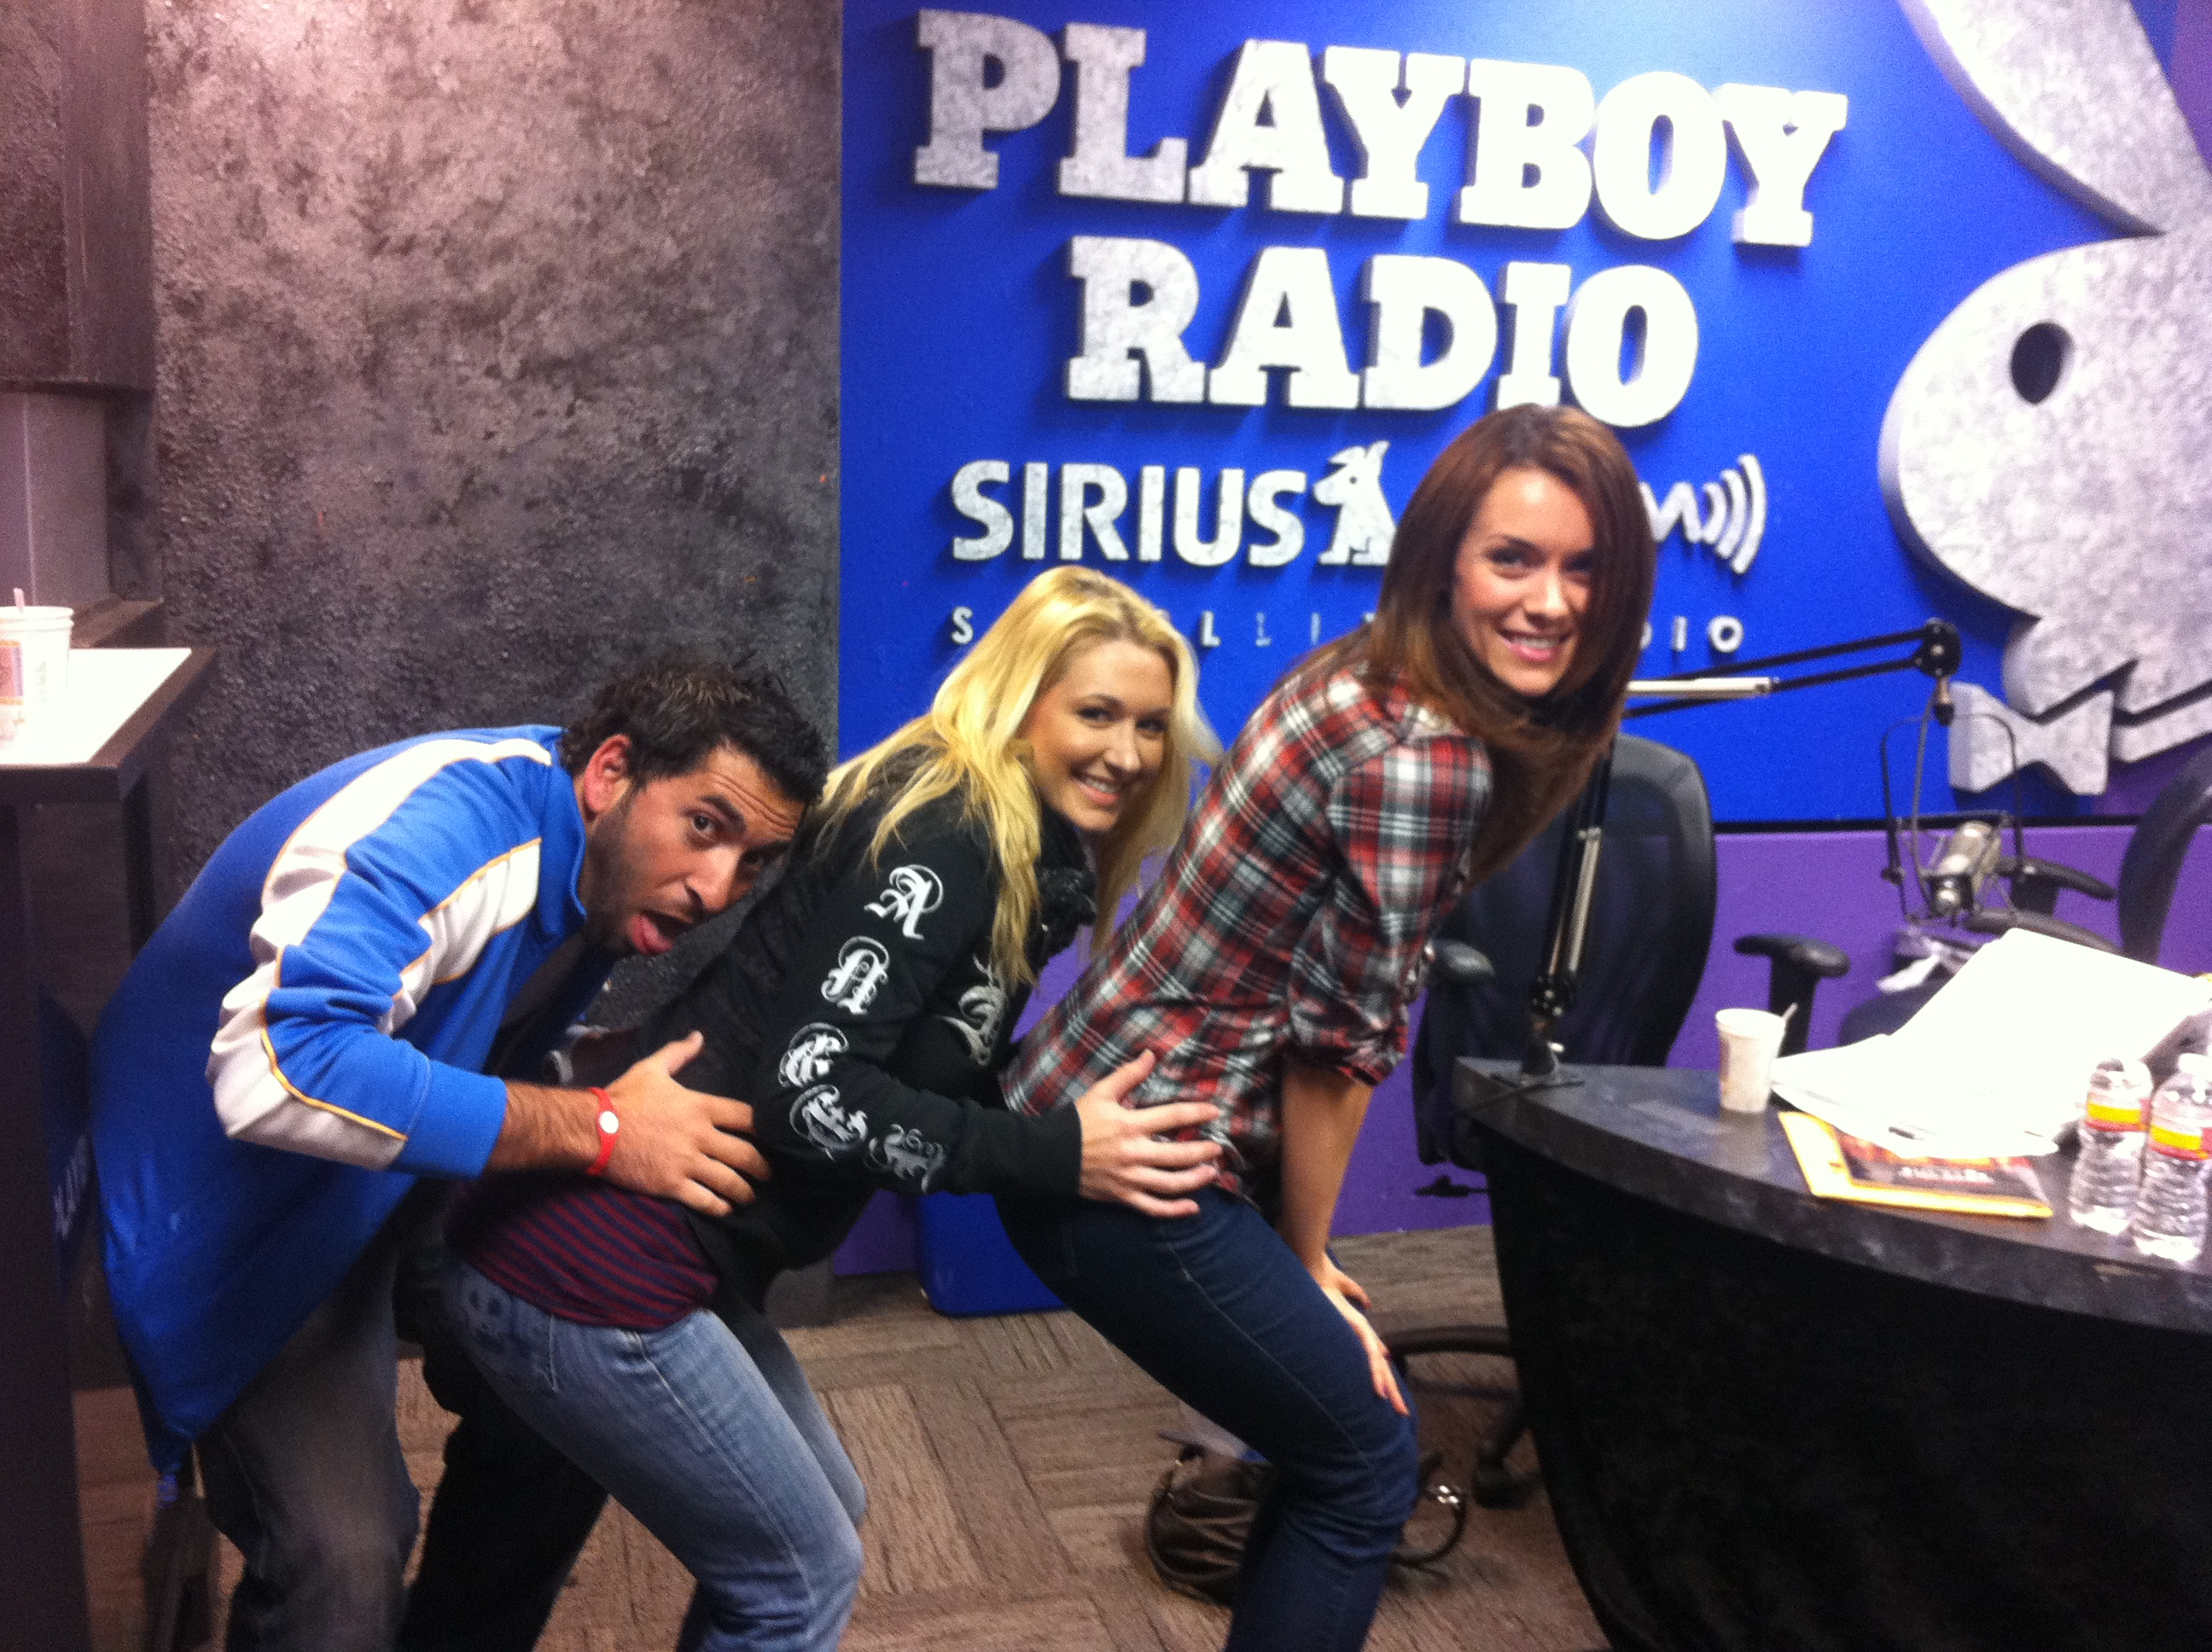 Amy Fisher Playboy friday 10/7/11 | the playboy morning show